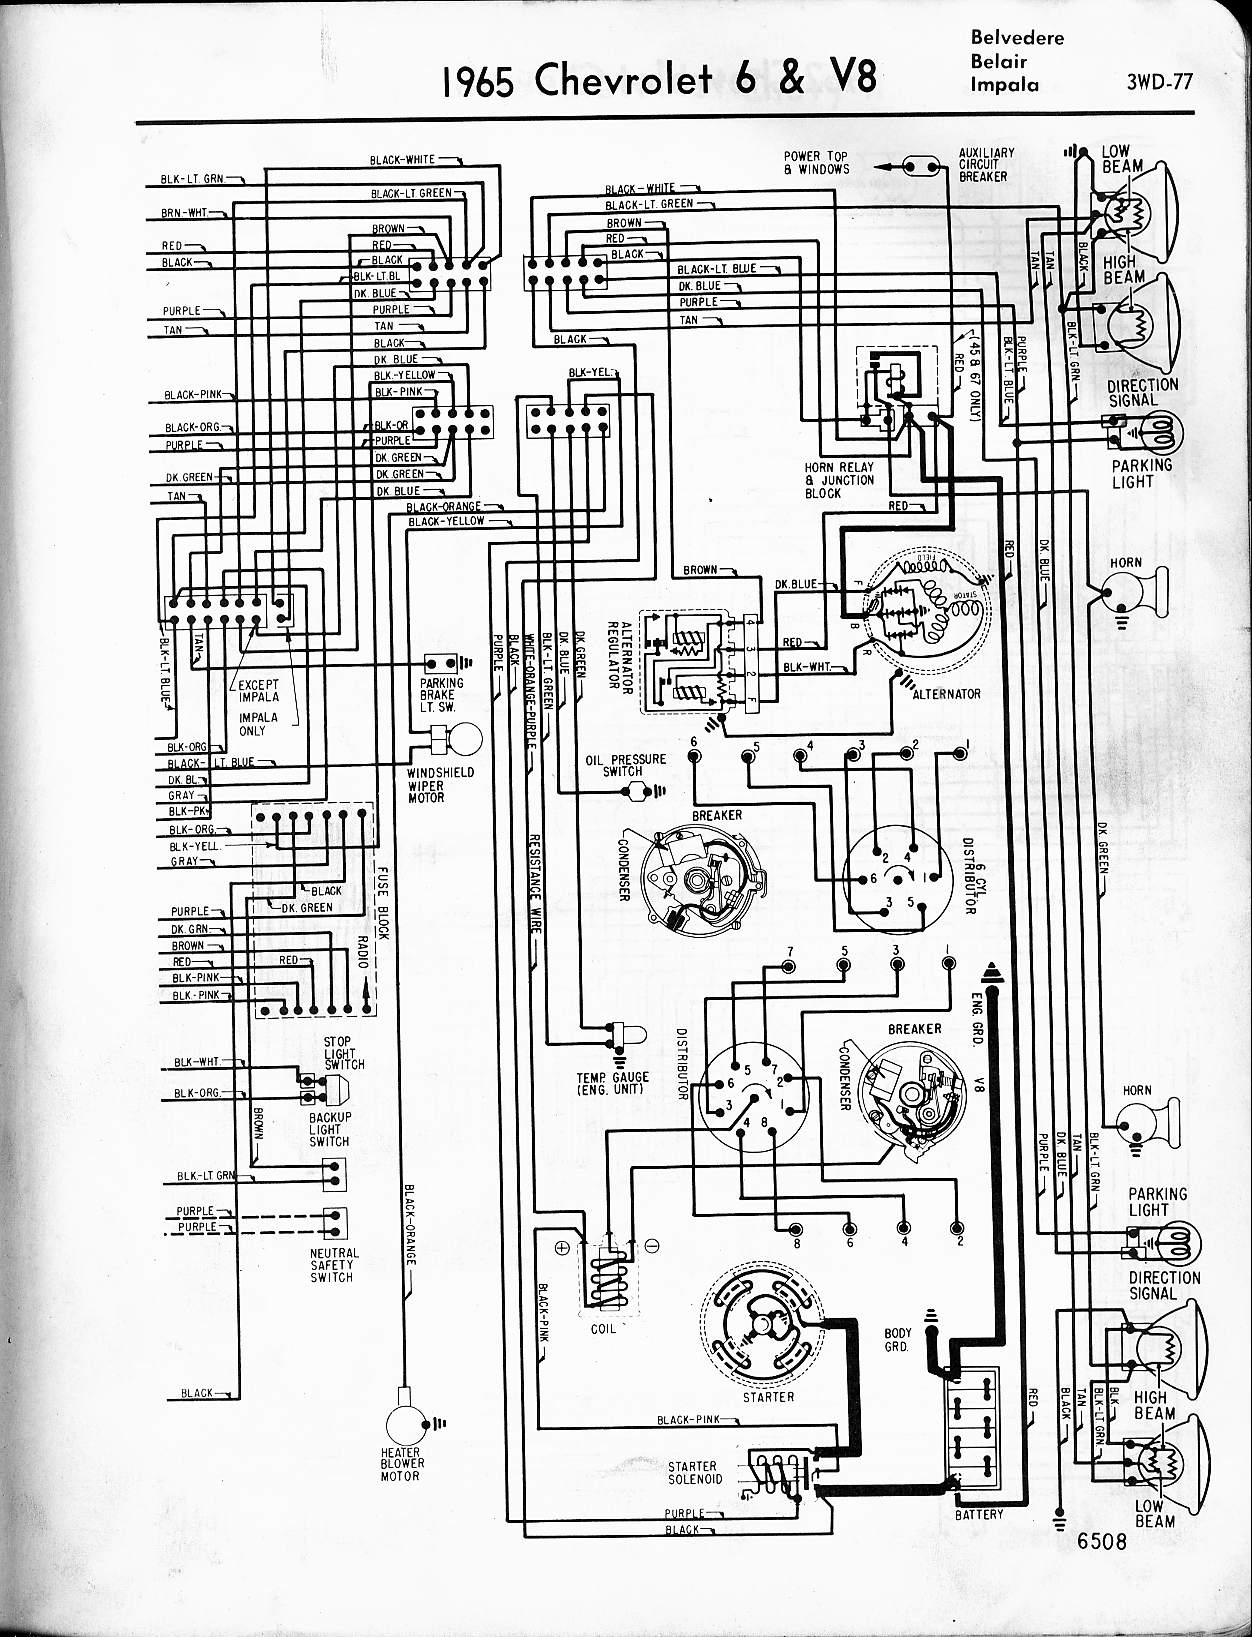 1965 chevelle wiring diagram schematics wiring diagrams u2022 rh orwellvets co 70 Nova Wiring Diagram 68 Nova Wiring Diagram